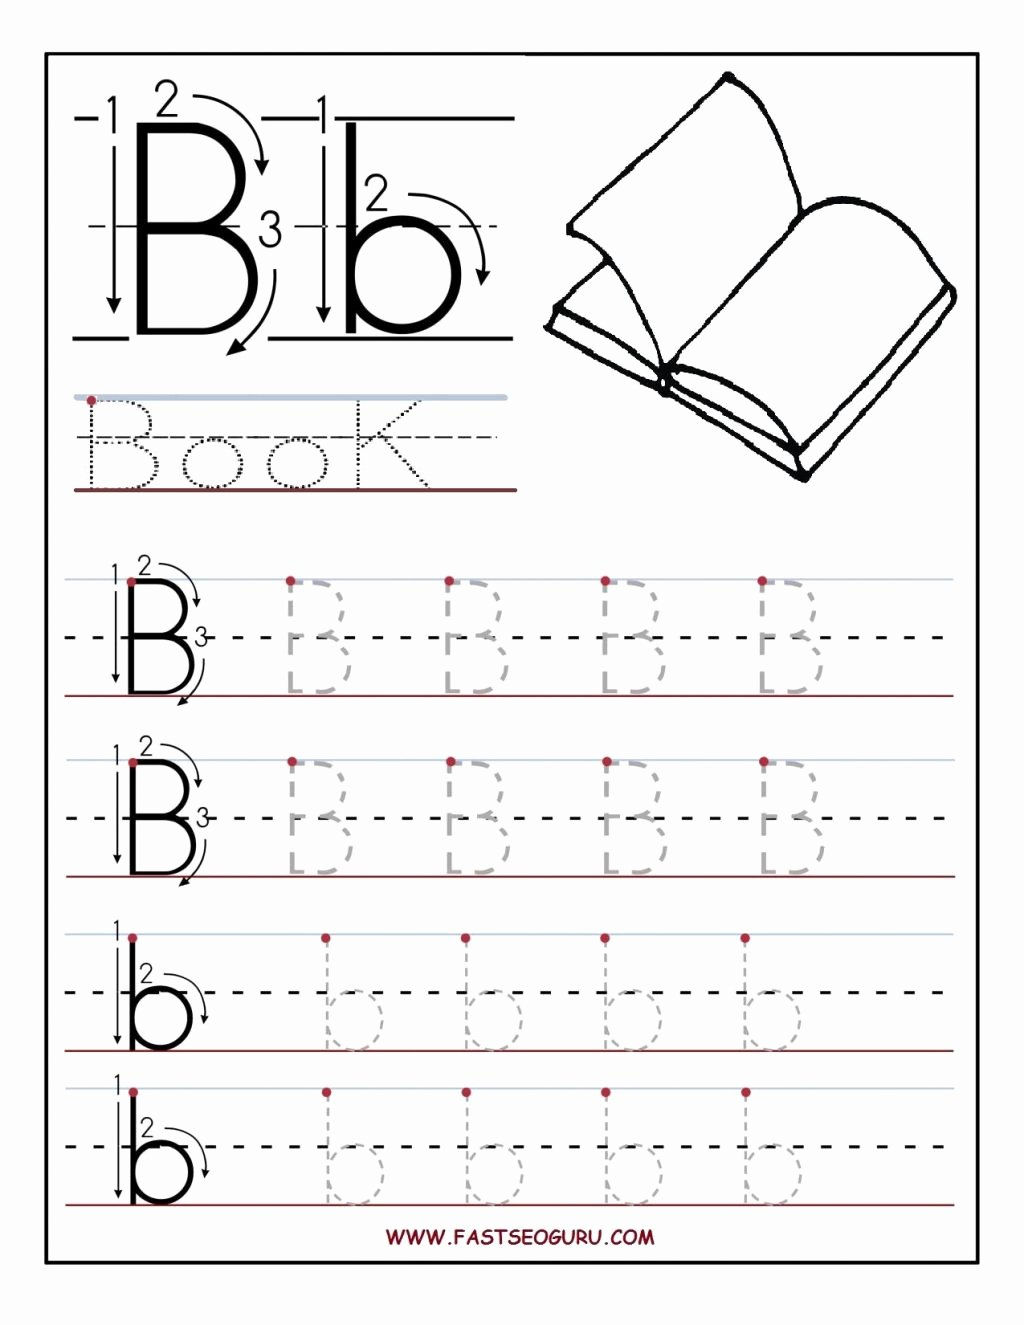 Free Printable Letter Tracing Worksheets for Preschoolers Printable Worksheet Free Pre K Printables Worksheet Printable Letter